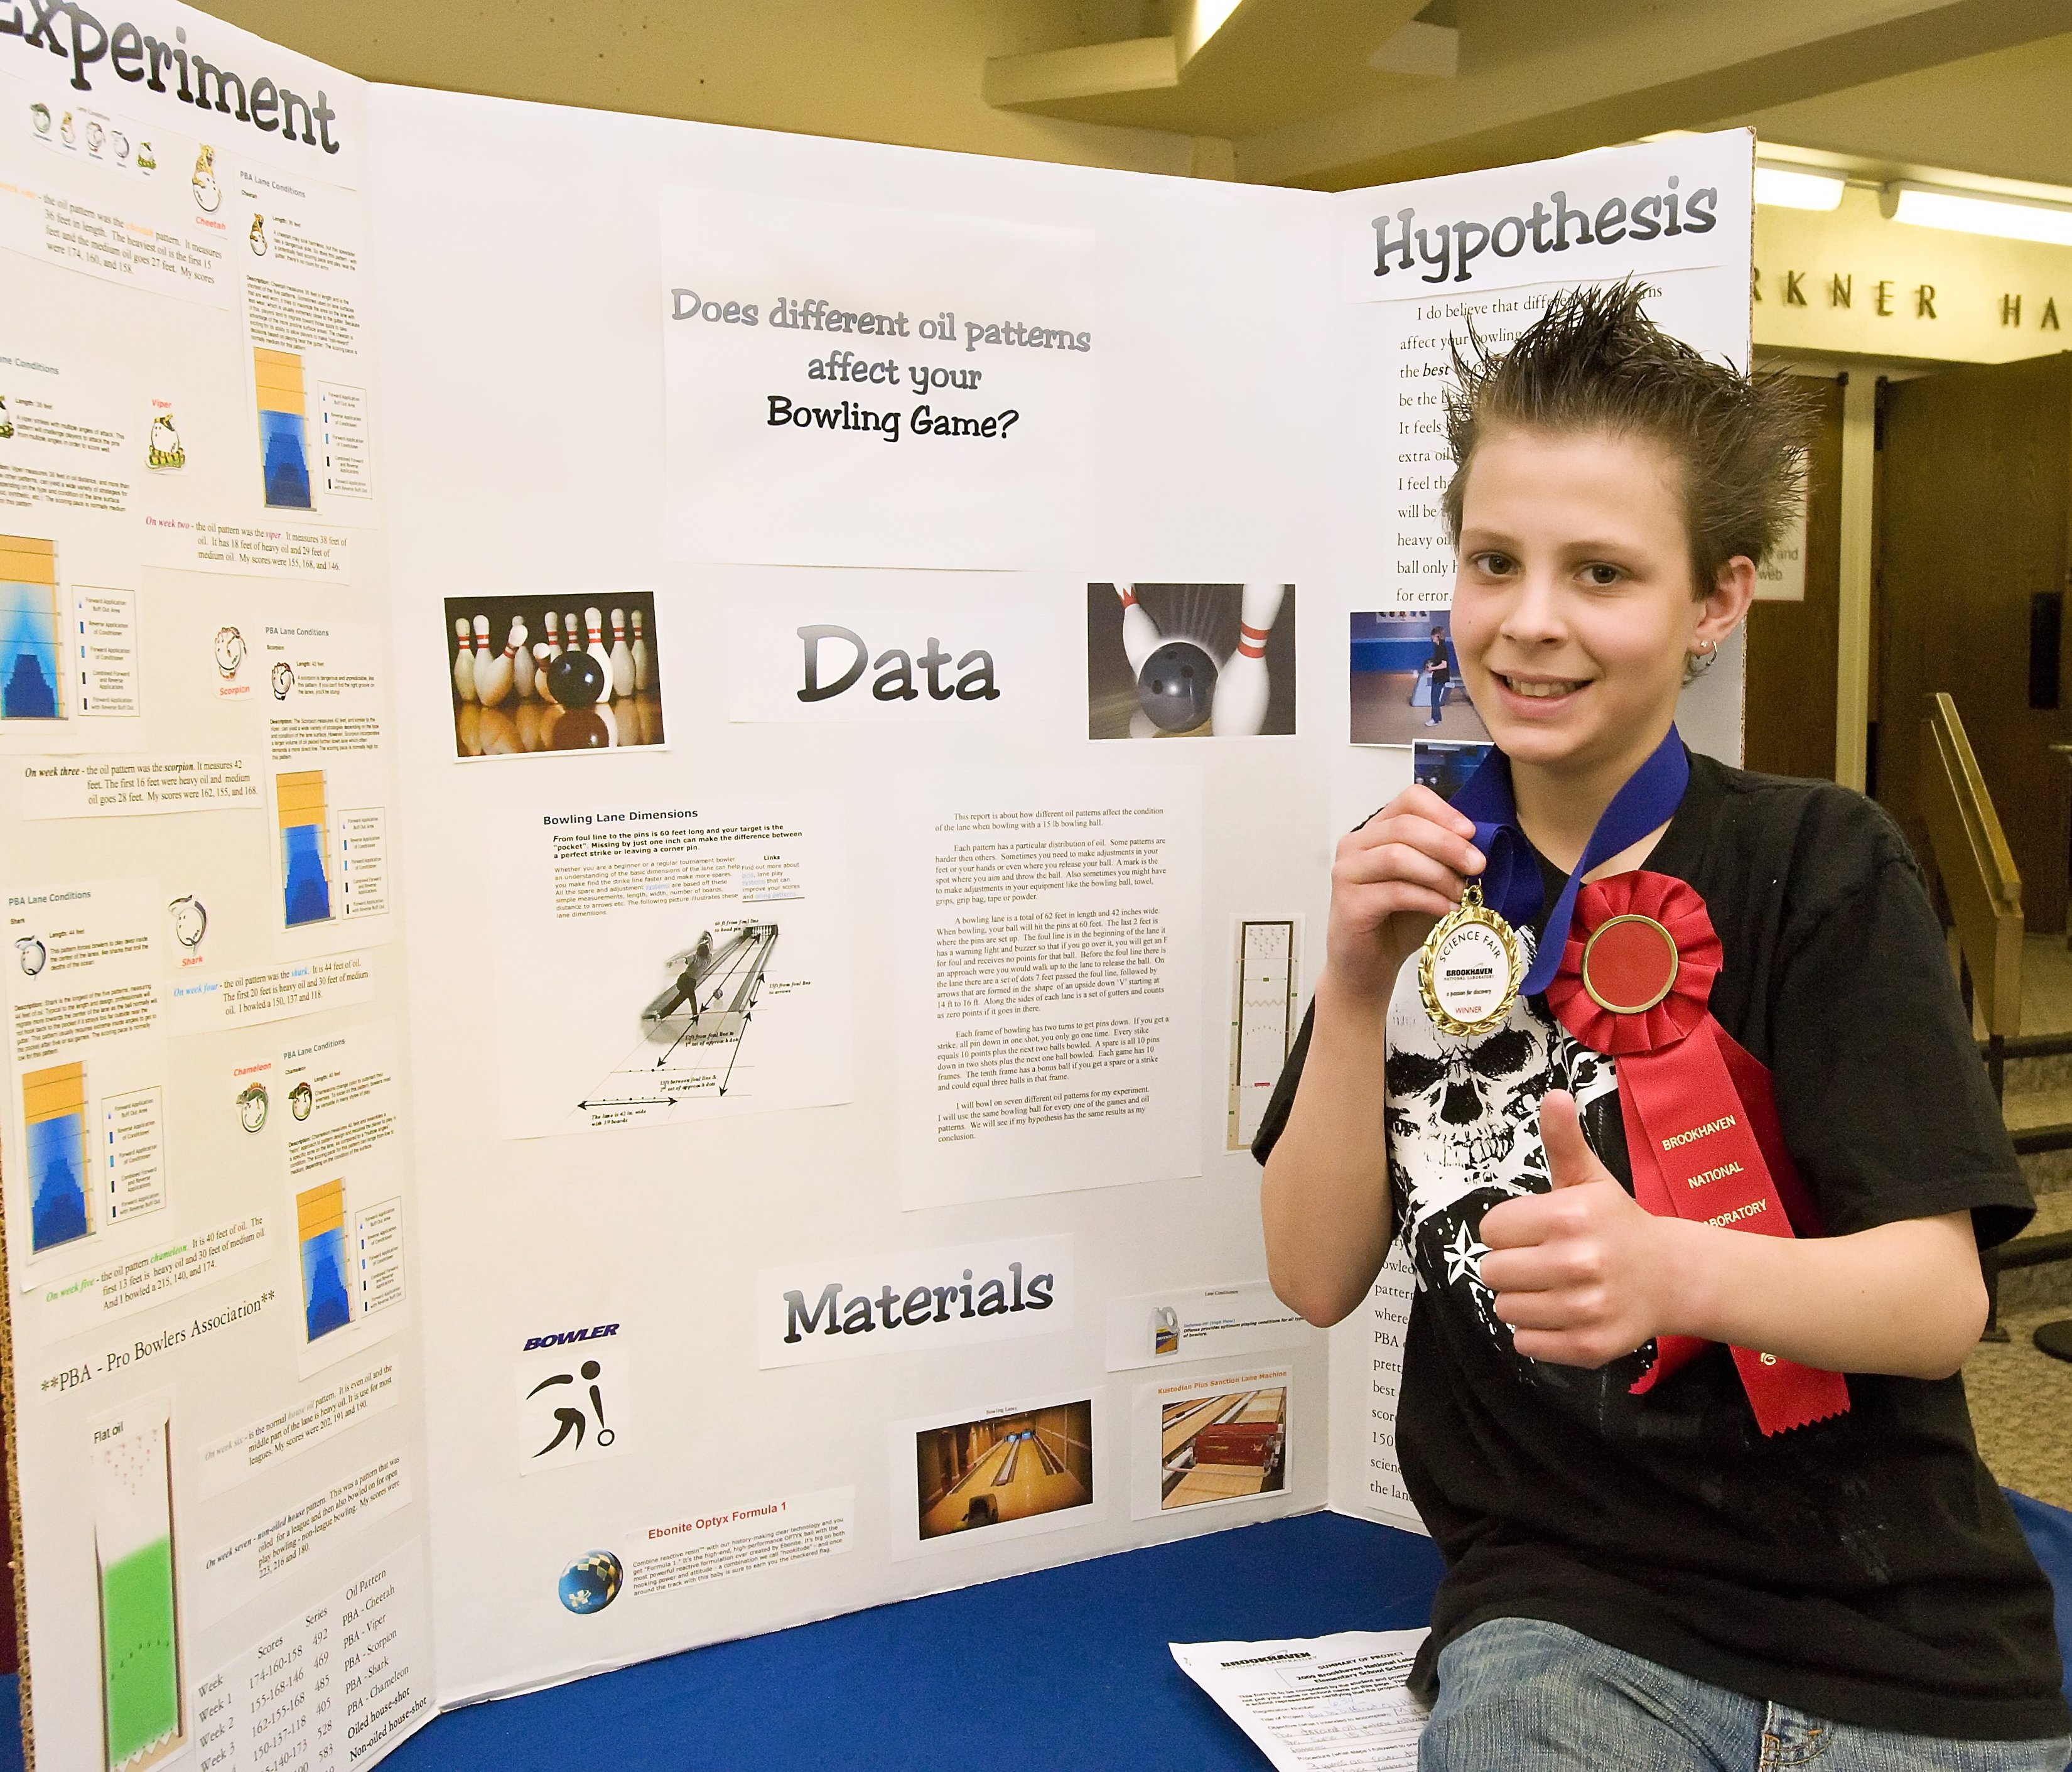 10 Cute Science Fair Project Ideas For 5Th Grade www science fair projects custom paper academic writing service 2 2021